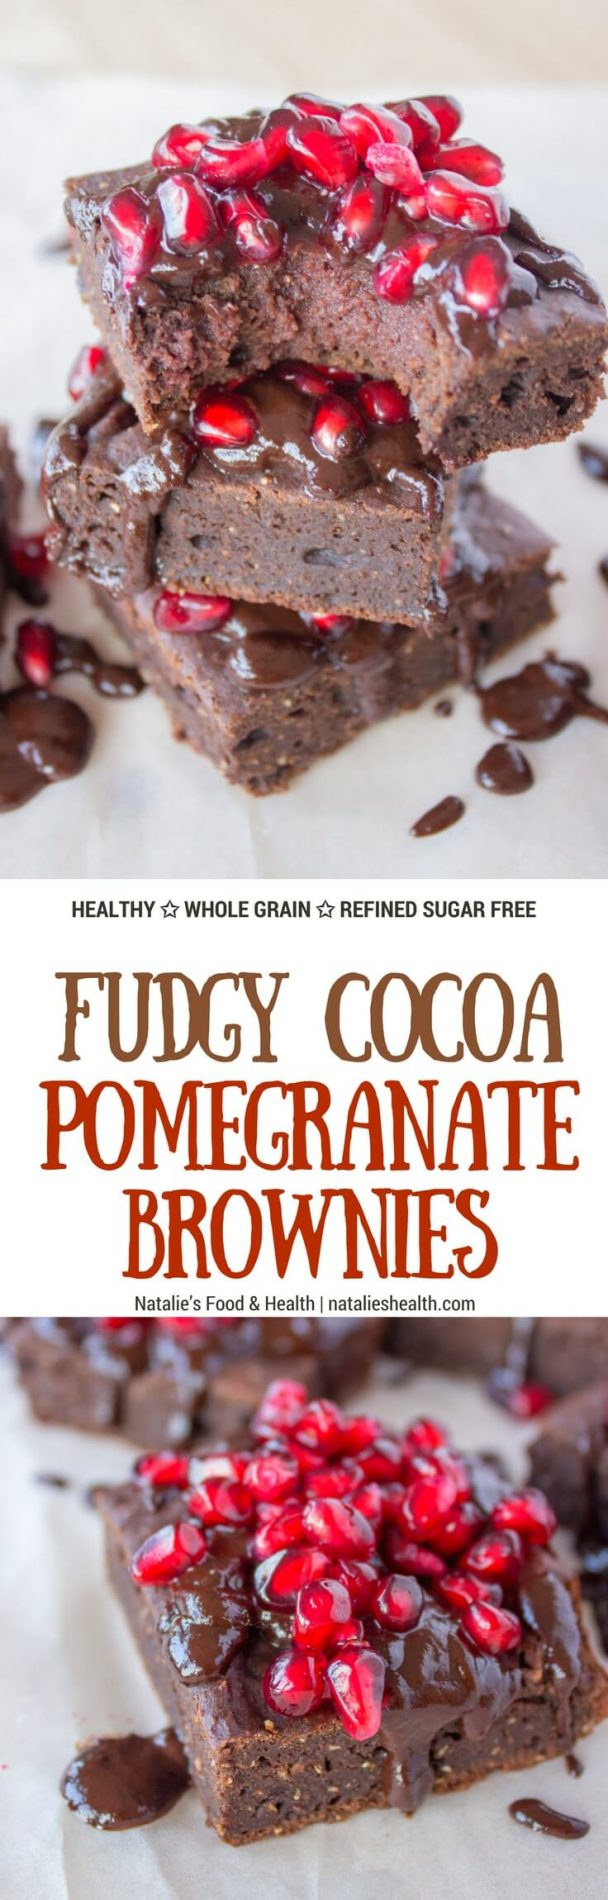 Full of luxurious dark chocolate flavor, made with all HEALTHY ingredients these Fudgy Cocoa Pomegranate Brownies are the pure cocoa pleasure. Soft and fudgy, enriched with warm aromatic spices, this melt in your mouth dessert will surely delight you. #chocolate #healthy #dessert #brownies #nosugar | www.natalieshealth.com